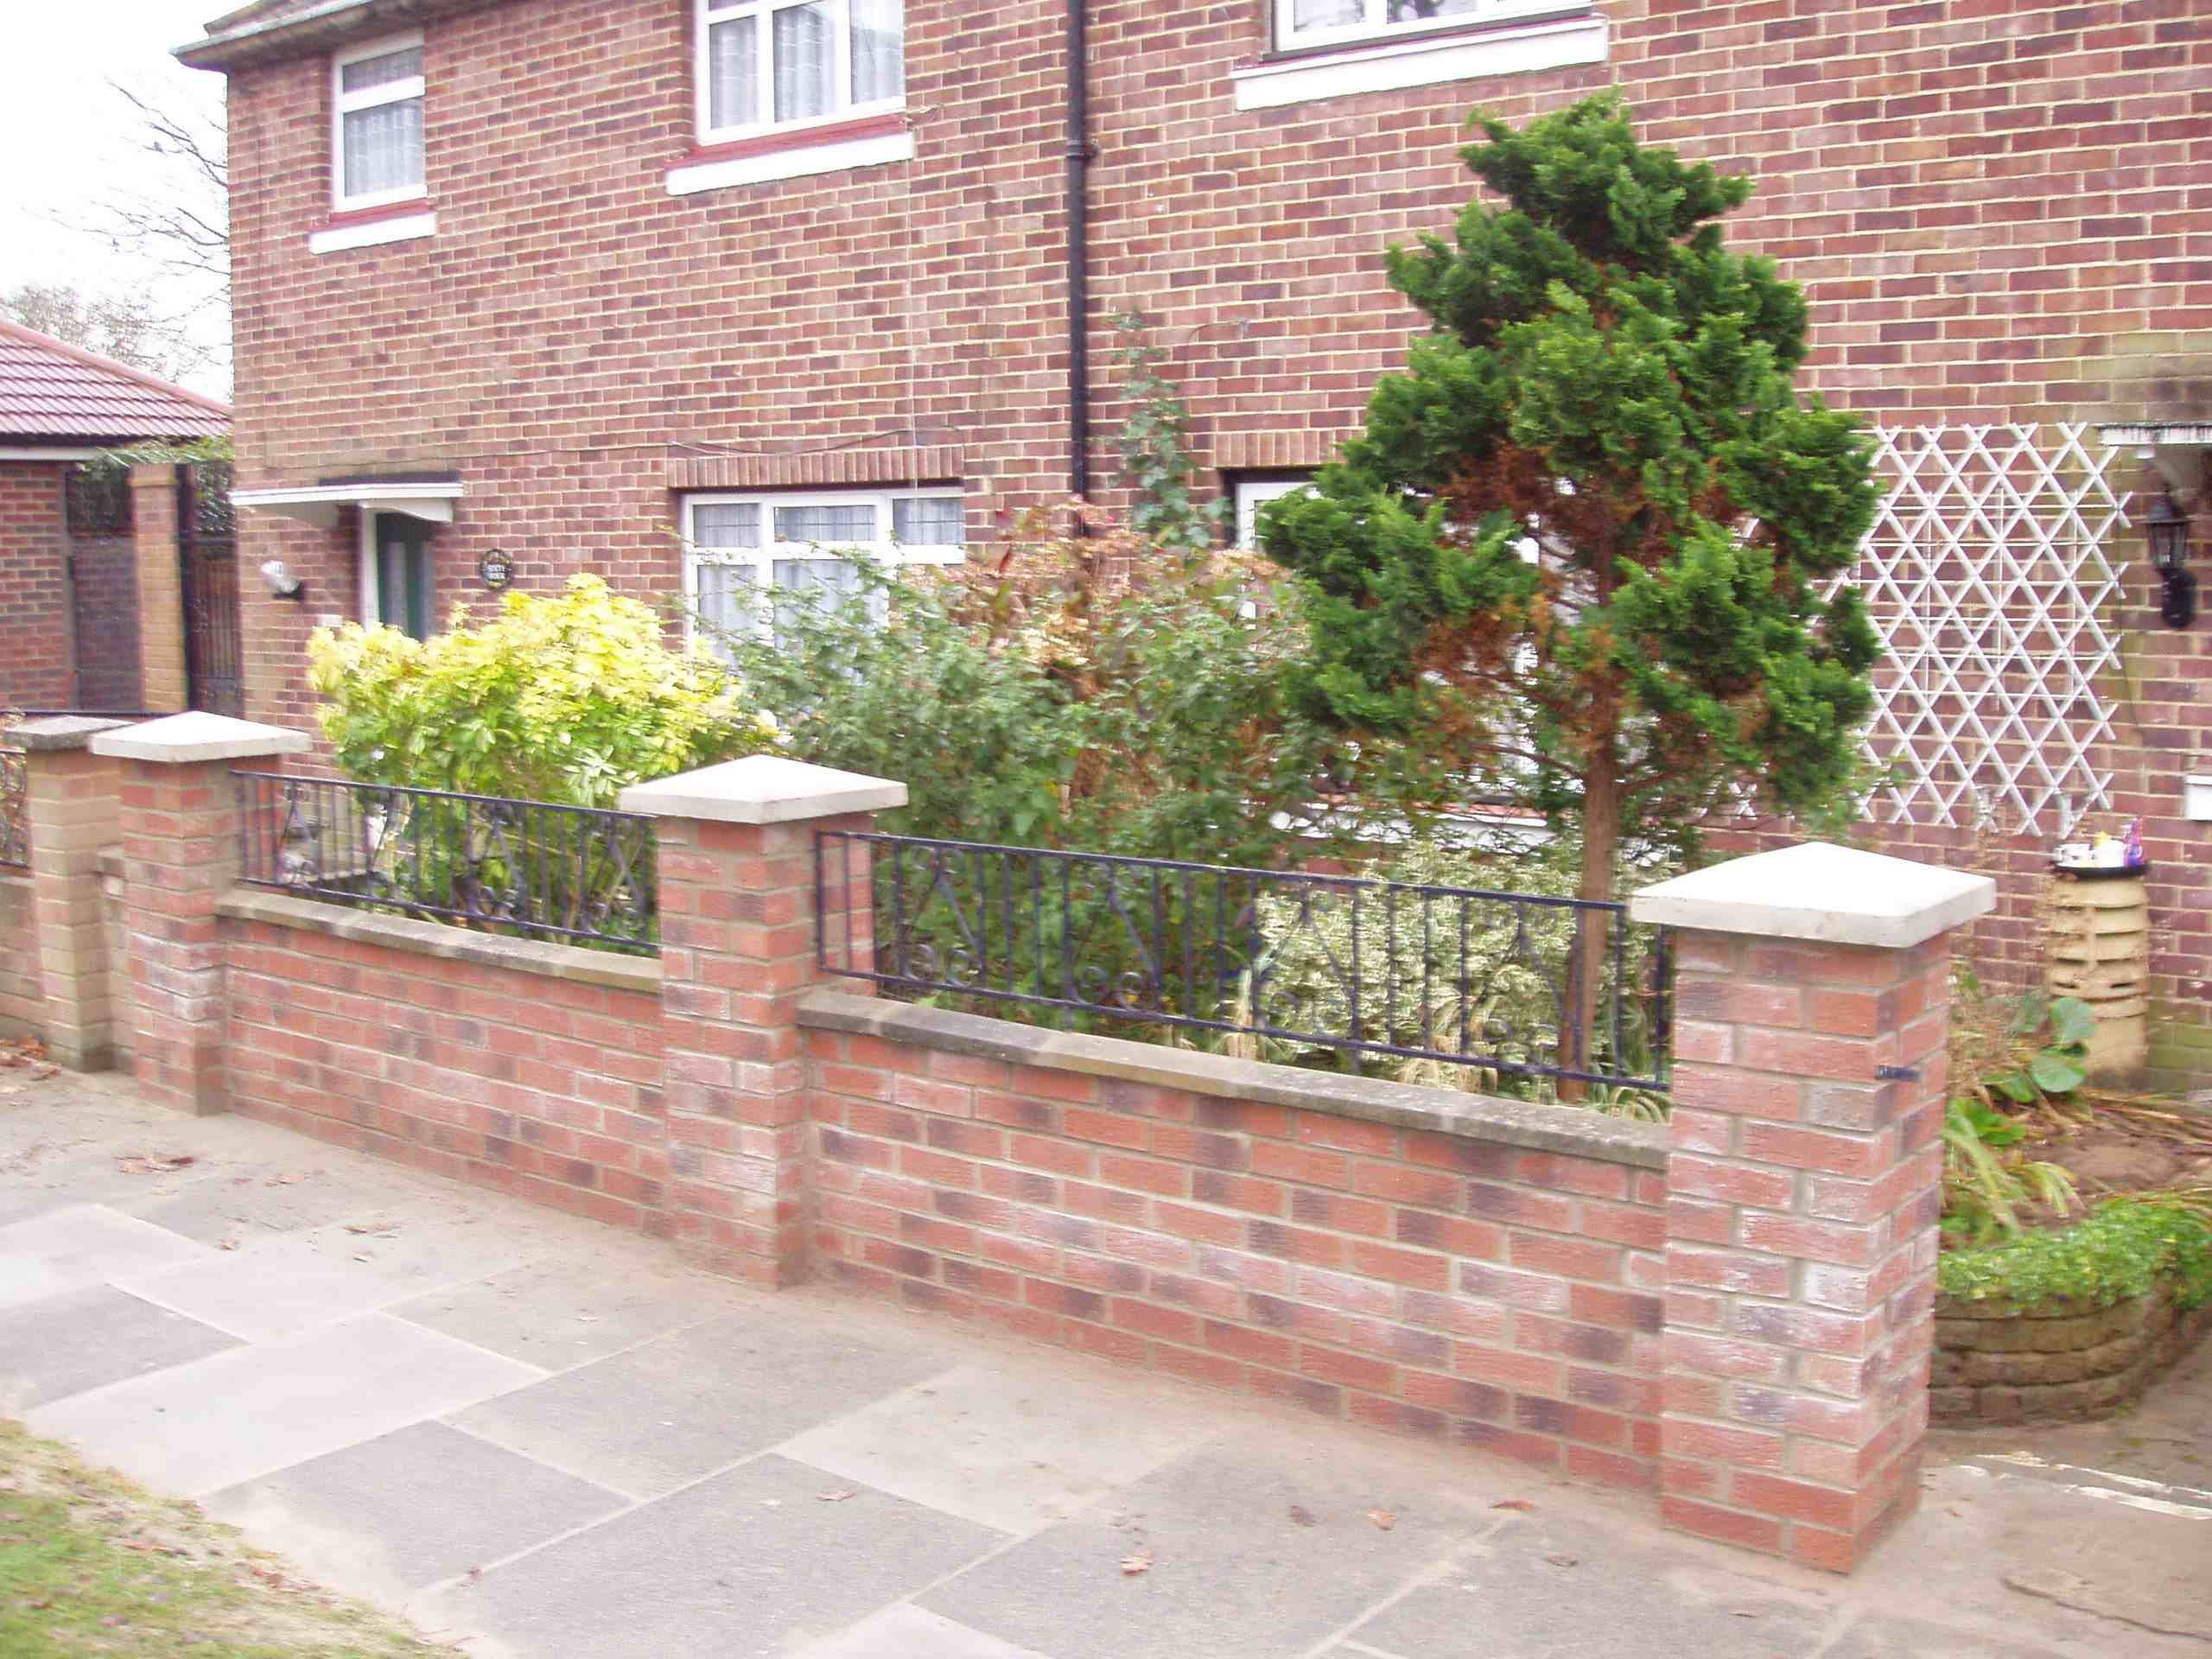 Here Is A Garden Wall With Iron Railing Inserts Between The Piers